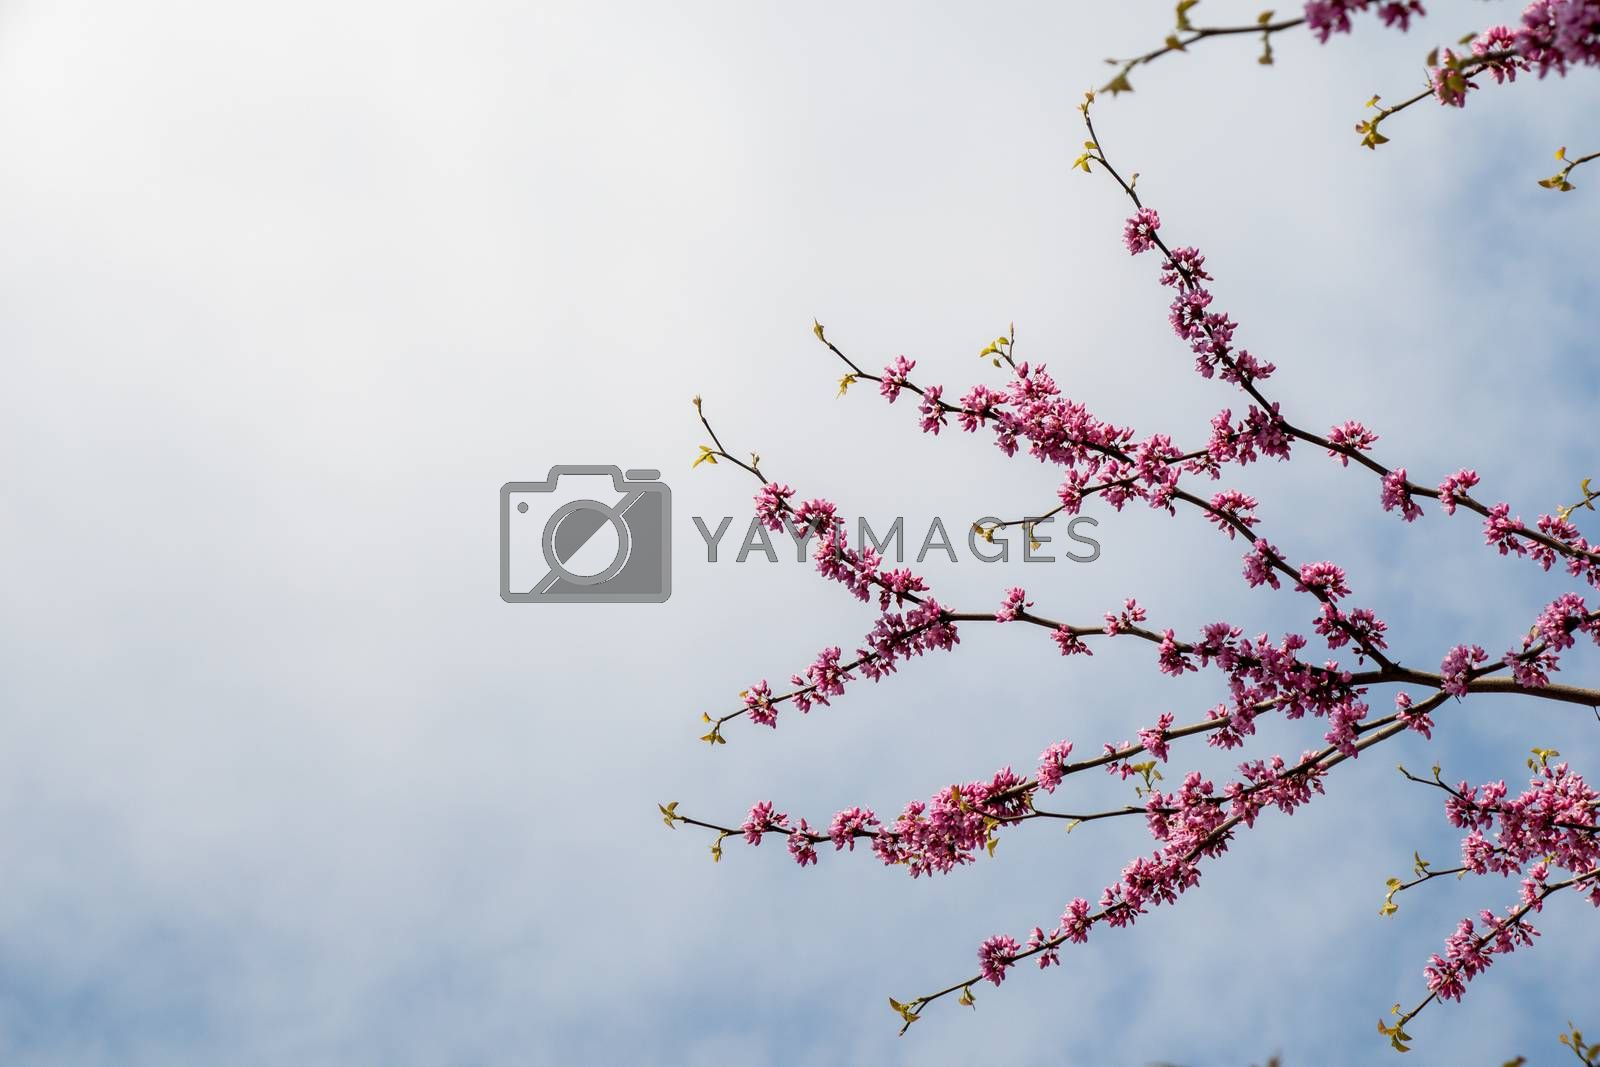 Colorful flowers bloom in the spring in trees